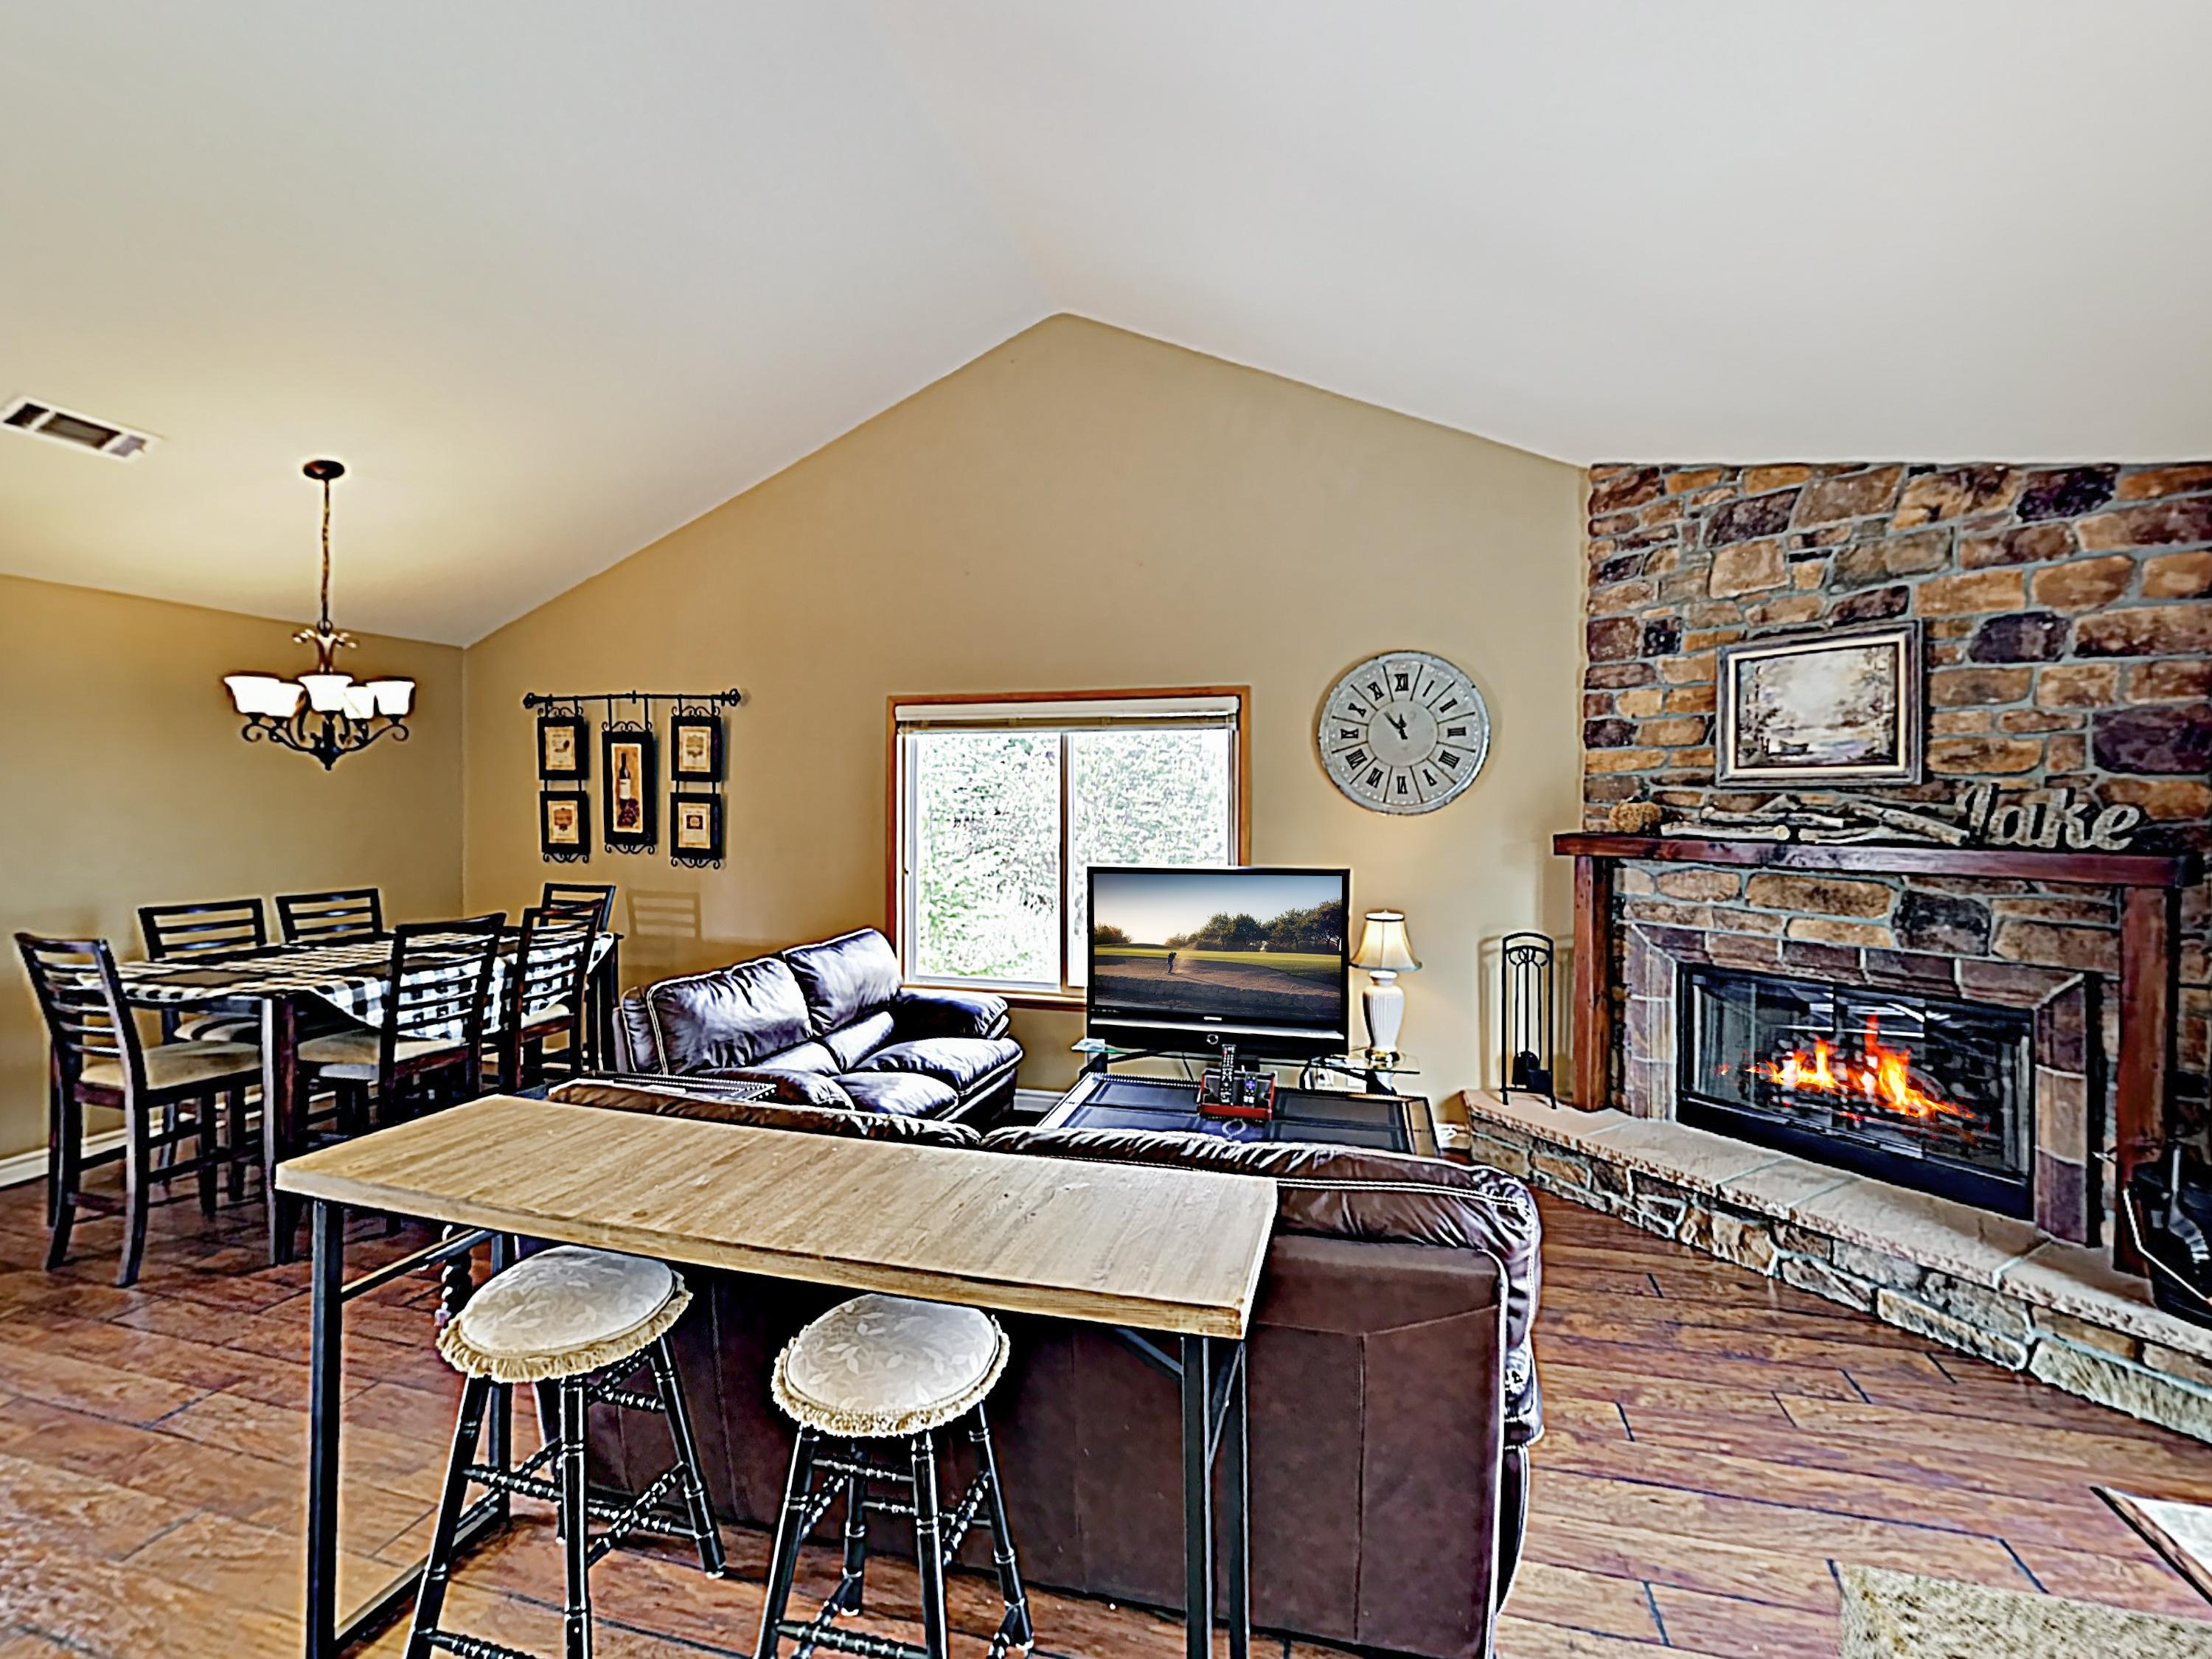 Vaulted ceilings soar in the open-concept living room. A wood-burning fireplace sits center stage.